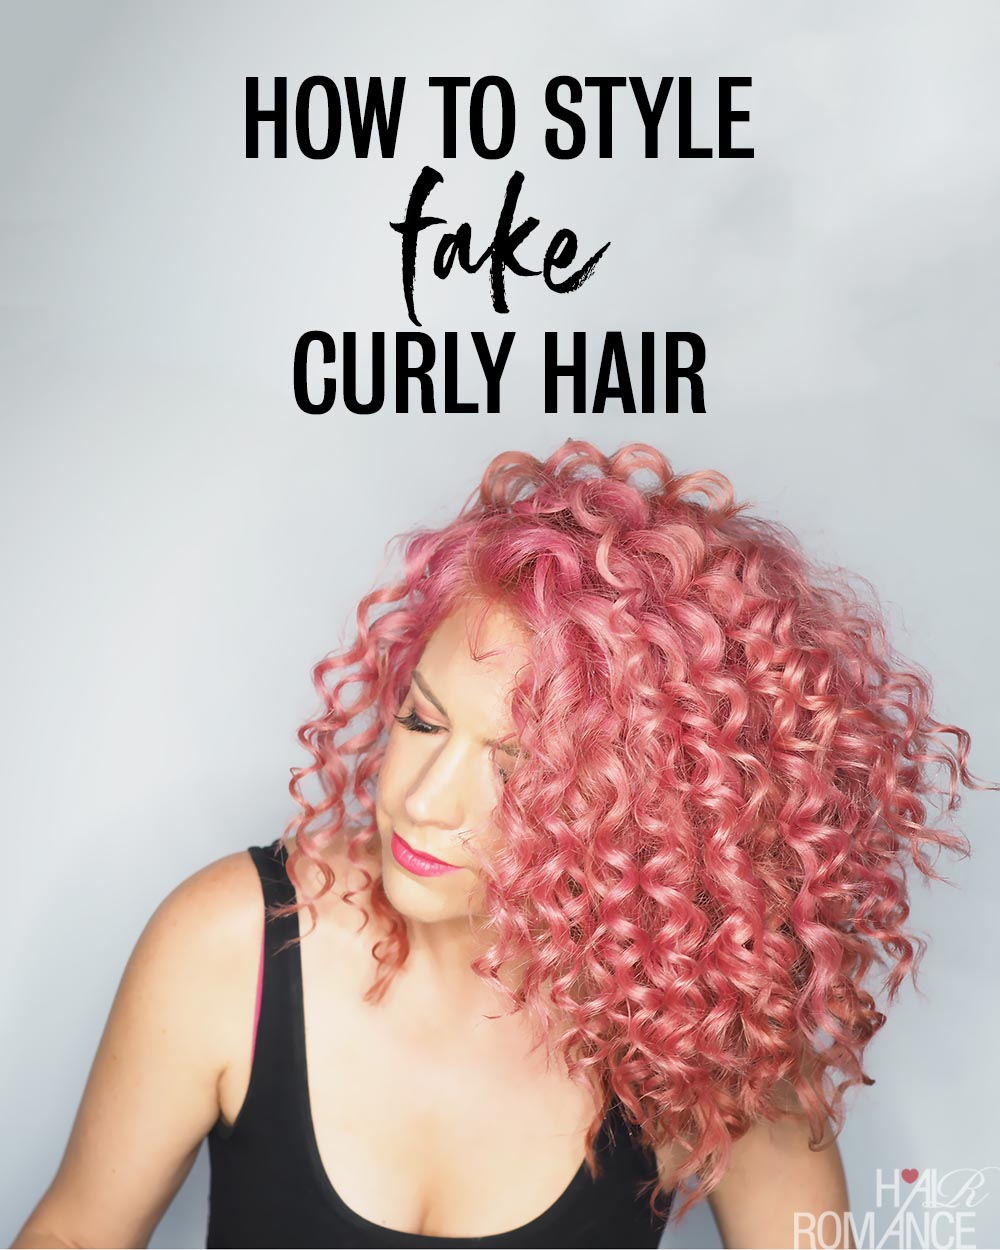 Fake curls! How to get hair that looks naturally curly - Hair Romance #layeredcurlyhair